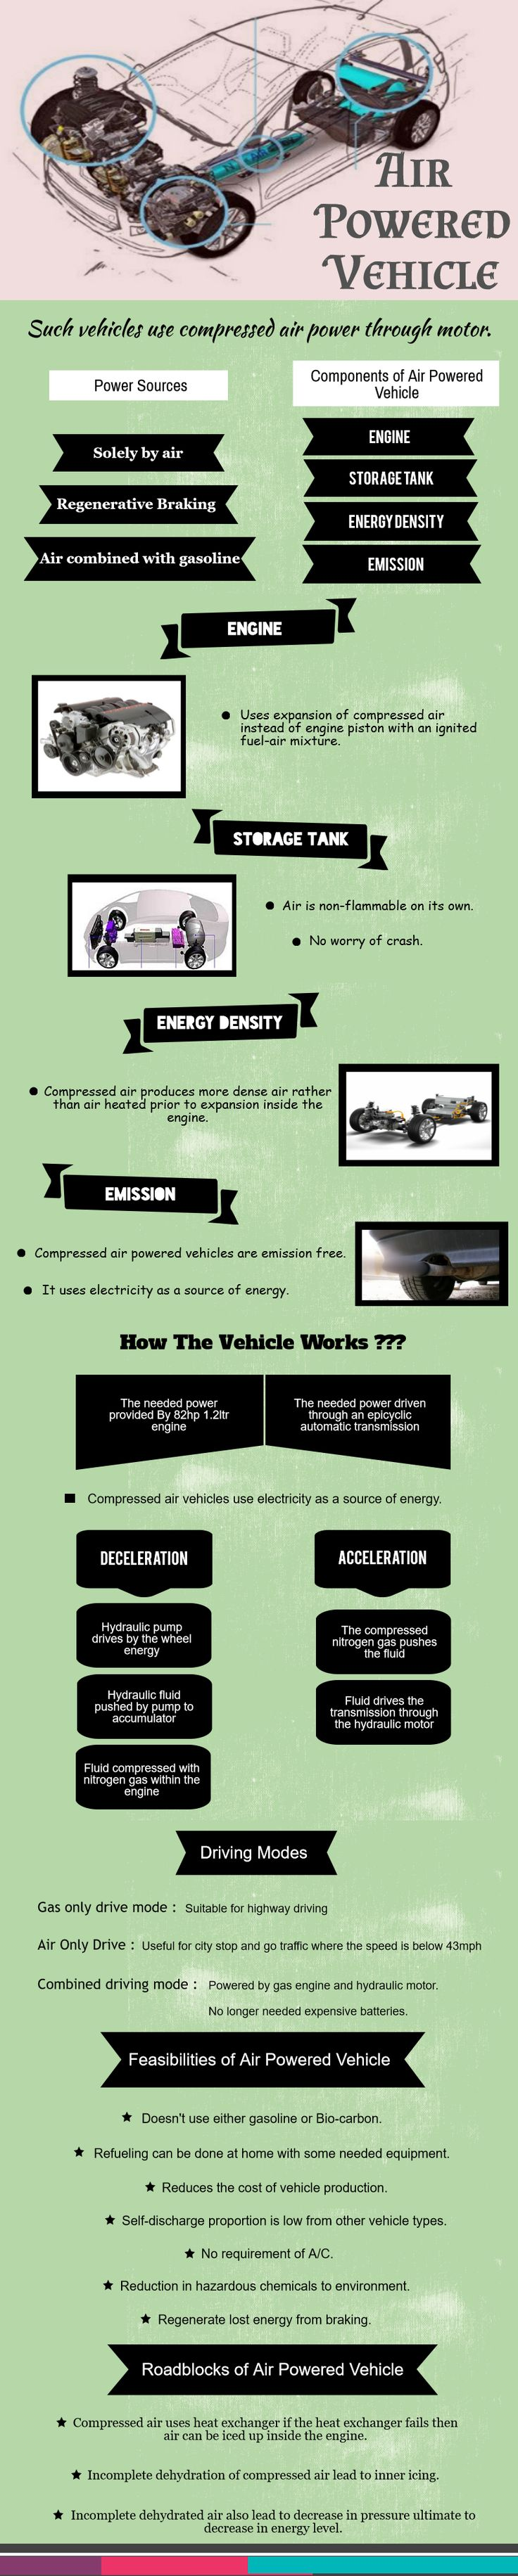 Air powered vehicles use compressed air power through motor instead of engine piston with an ignited fuel-air mixture. It has several advantages over the different gasoline vehicles. Learn here how this vehicle works and what are its advantages and drawbacks.